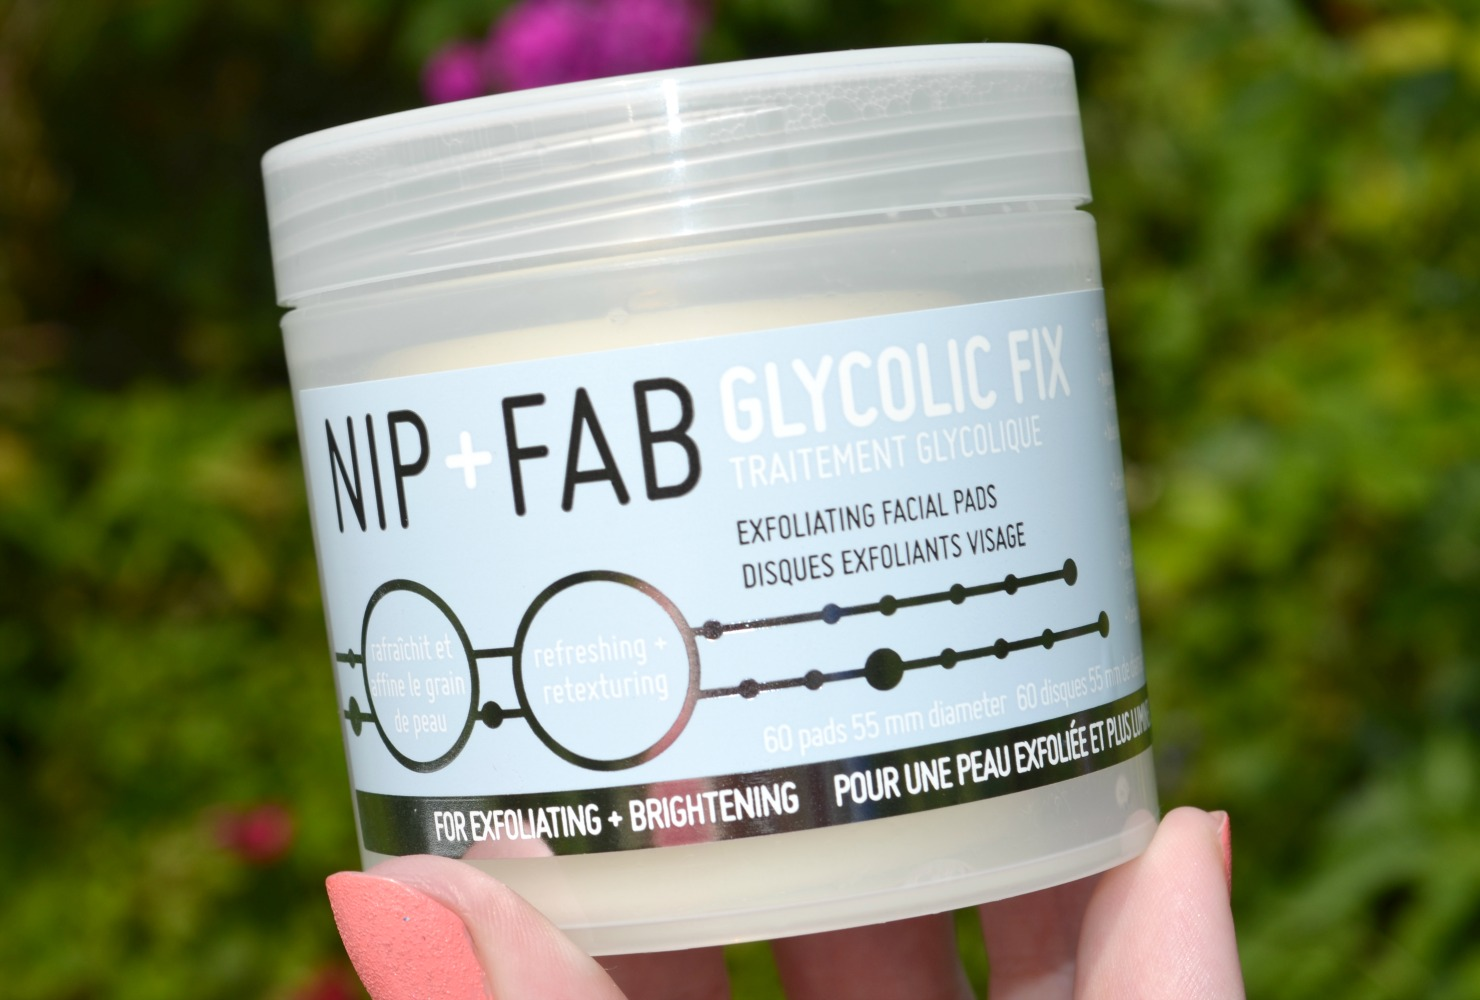 Nip + Fab Glycolic Fix Exfoliating Facial Pads Review - glycolic acid soaked exfoliating pads to slough away dead skin cells